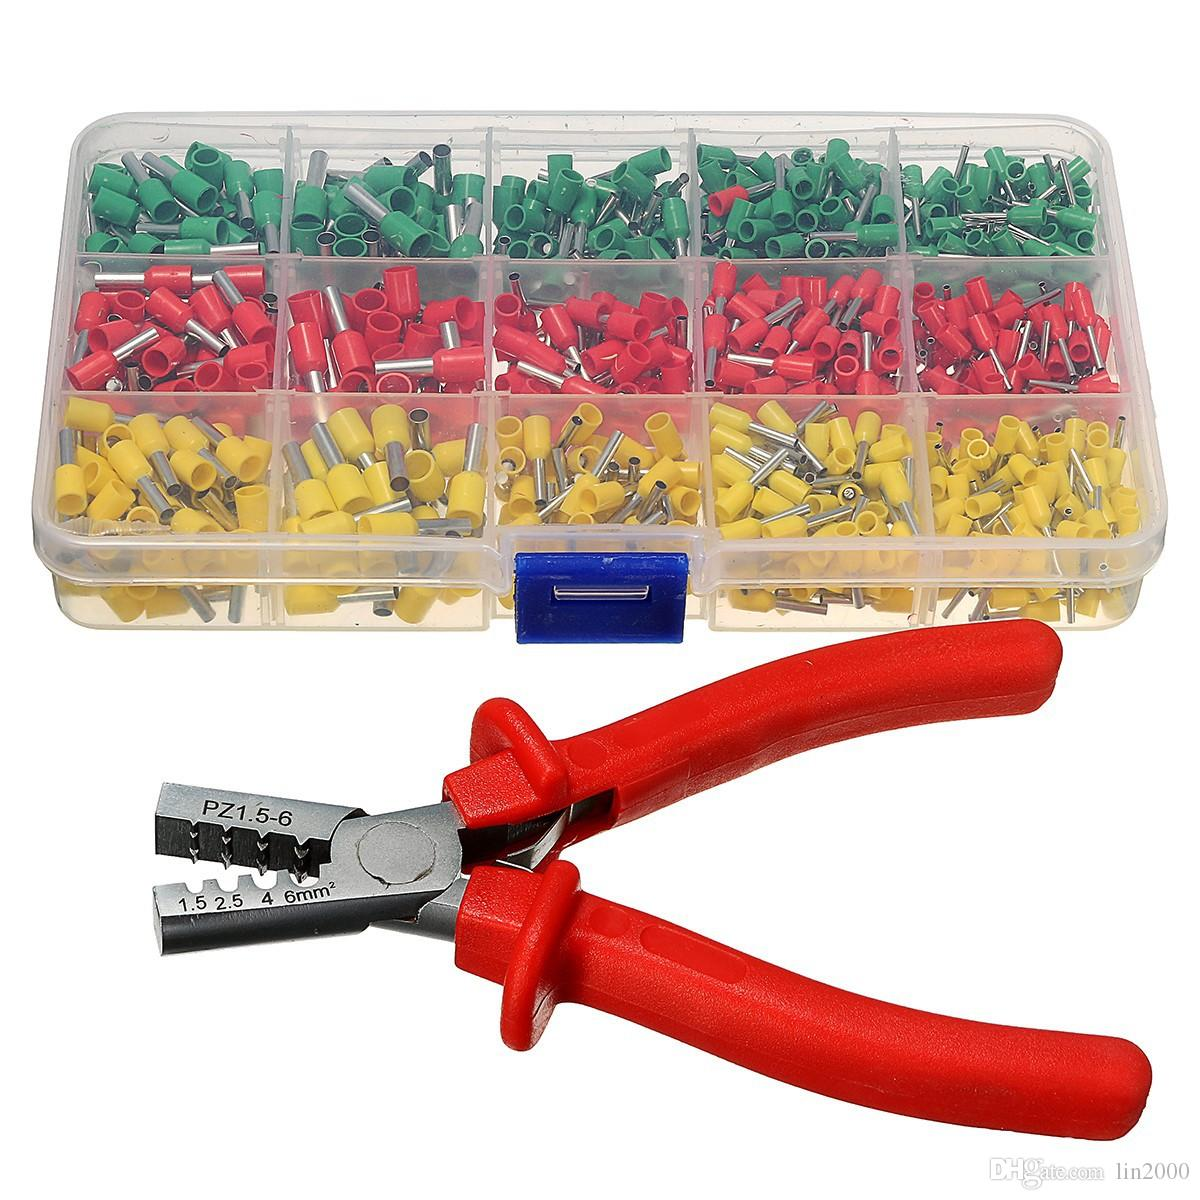 Crimping Tool Crimper Plier With Tube End Ferrule Terminals Car Wiring Harness Assortment Kit Tools For Connectors Online 2846 Set On